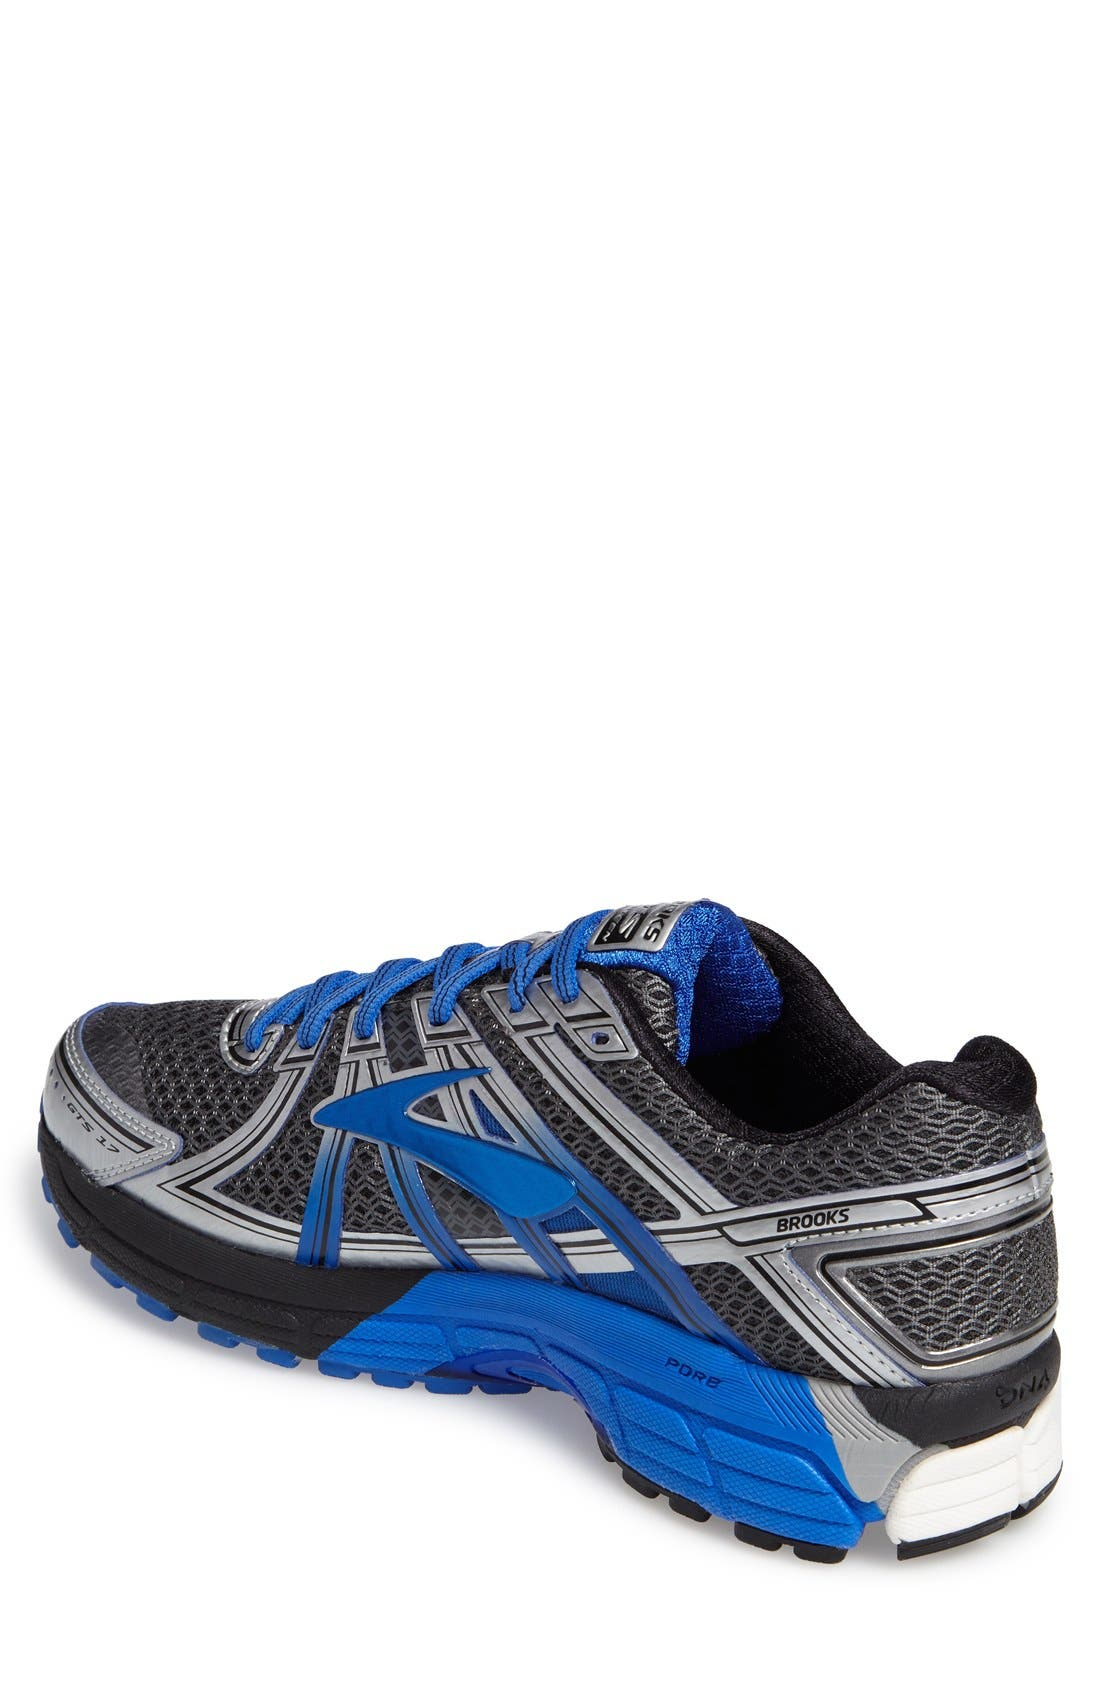 Adrenaline GTS 17 Running Shoe,                             Alternate thumbnail 2, color,                             Anthracite/ Blue/ Silver